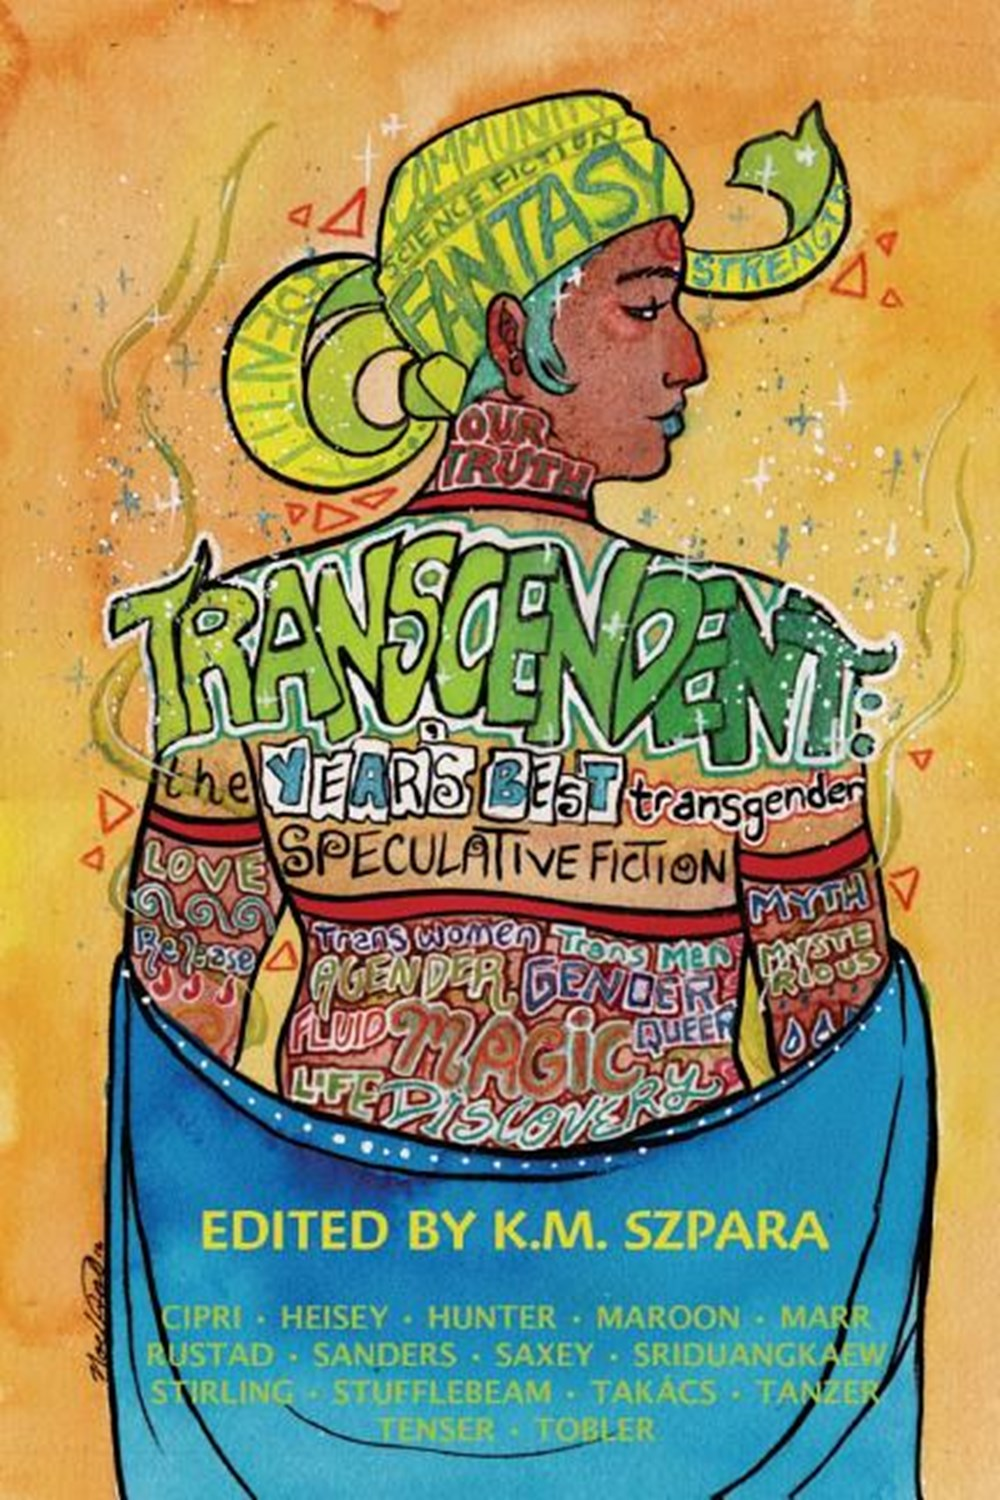 Transcendent The Year's Best Transgender Speculative Fiction